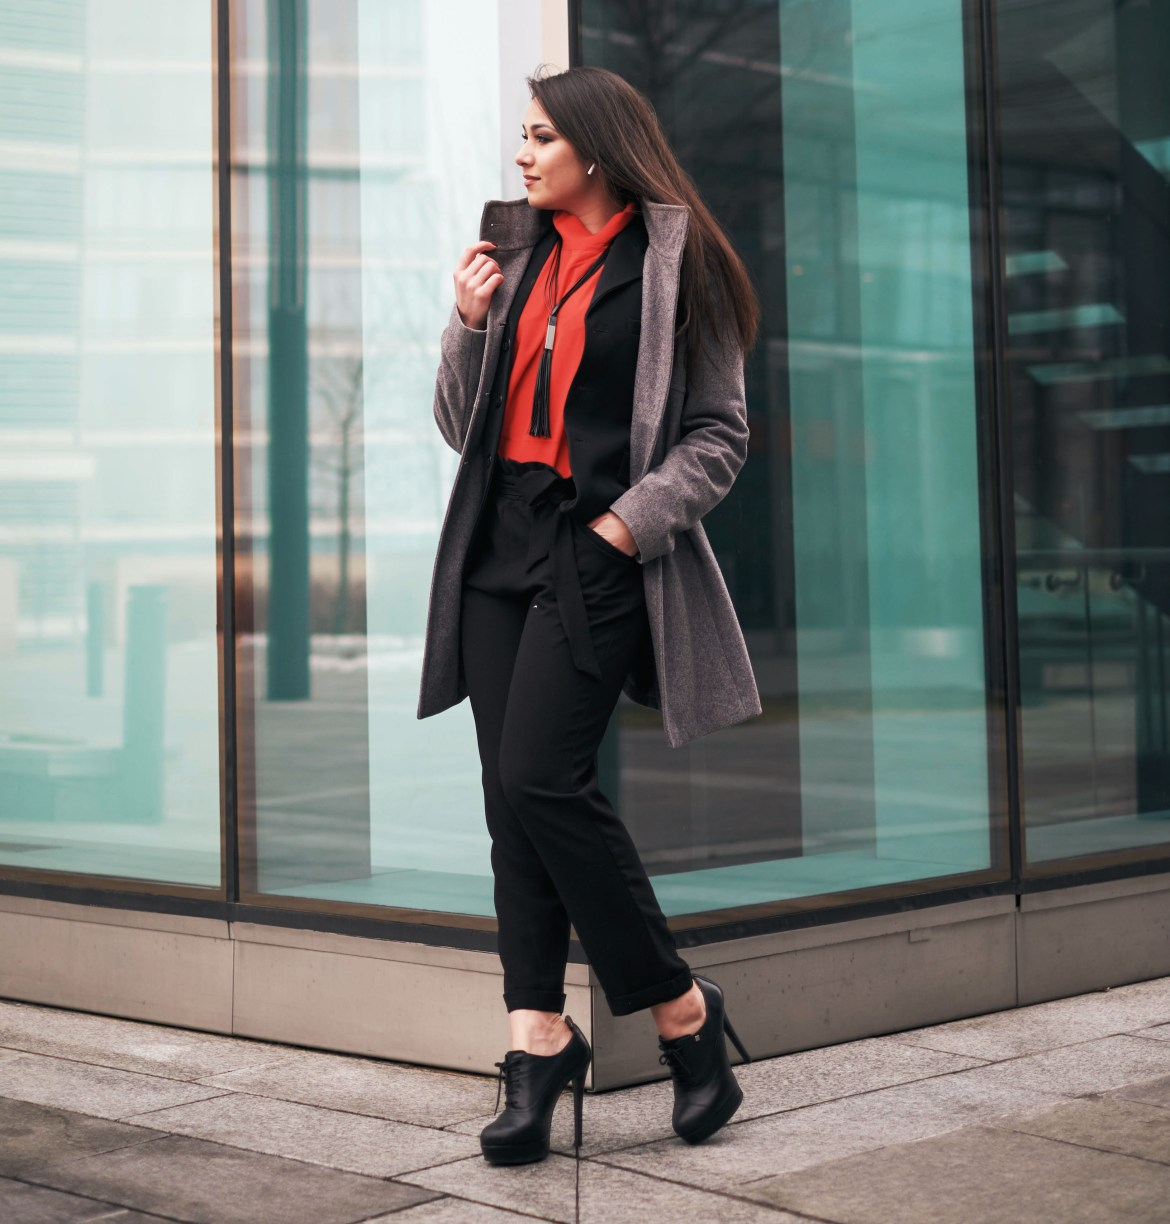 Vibrant Business Work Outfit Ideas for Women